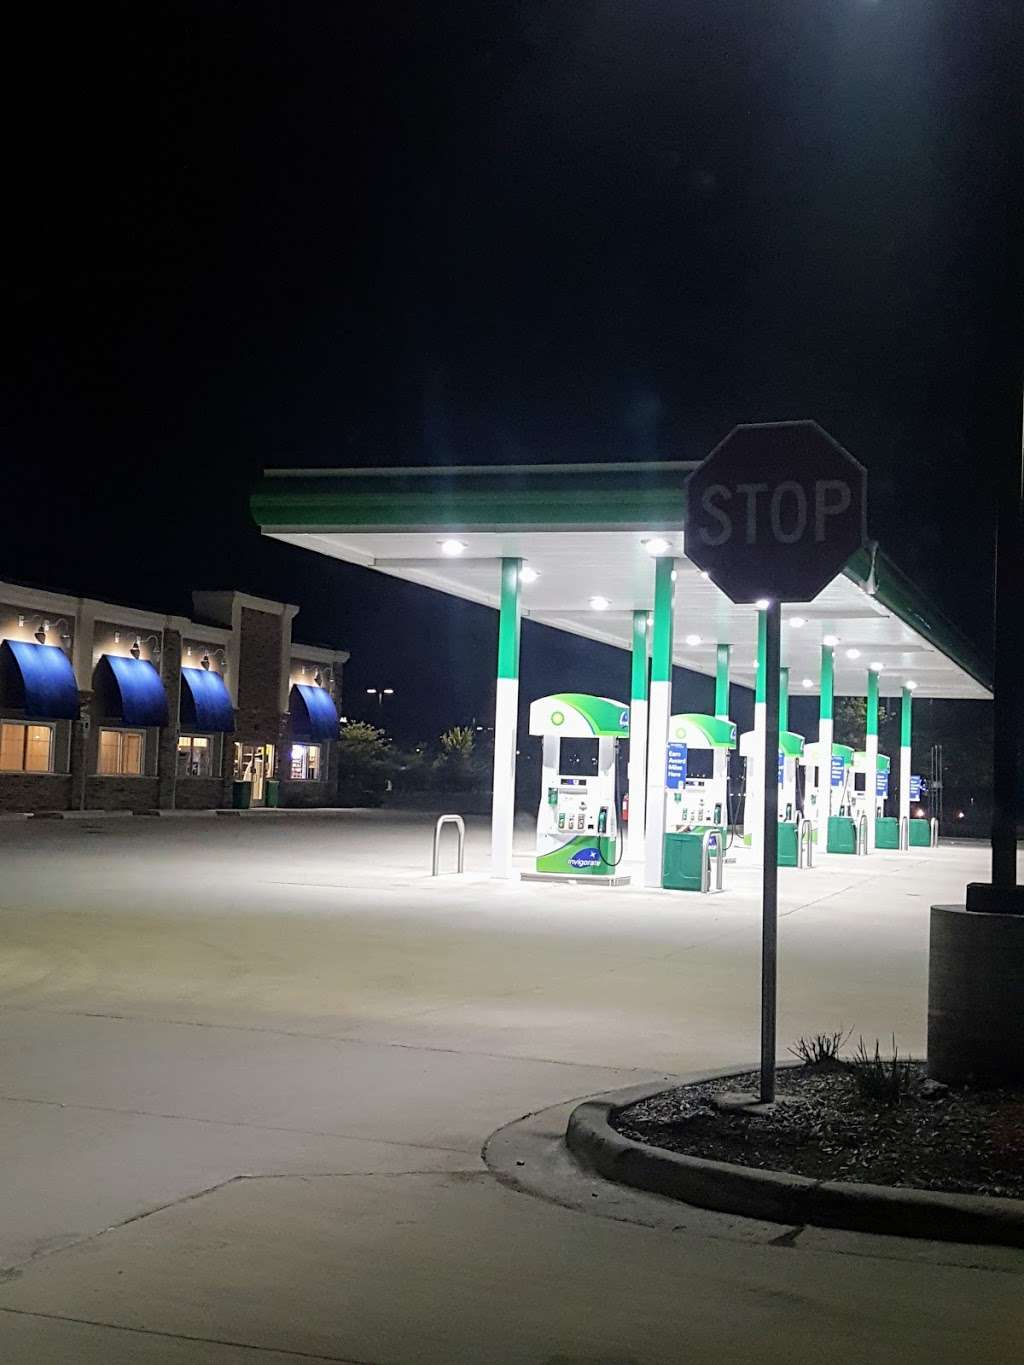 BP Oasis by 59 - gas station  | Photo 4 of 4 | Address: 4665 Hoffman Blvd, Hoffman Estates, IL 60192, USA | Phone: (224) 802-2119